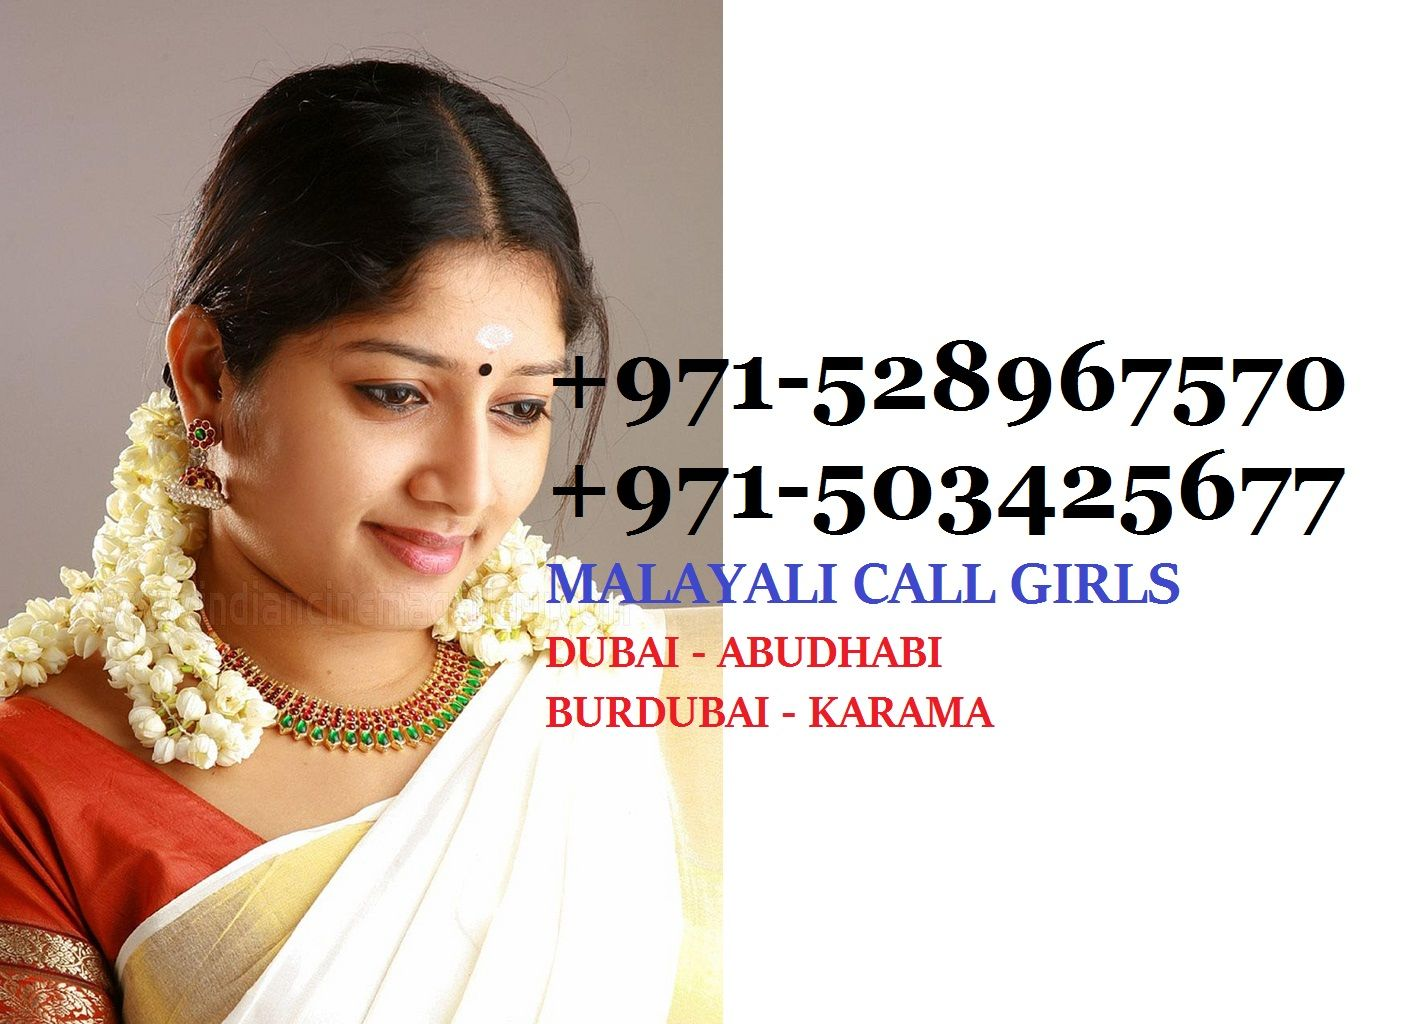 Call girls number in kerala